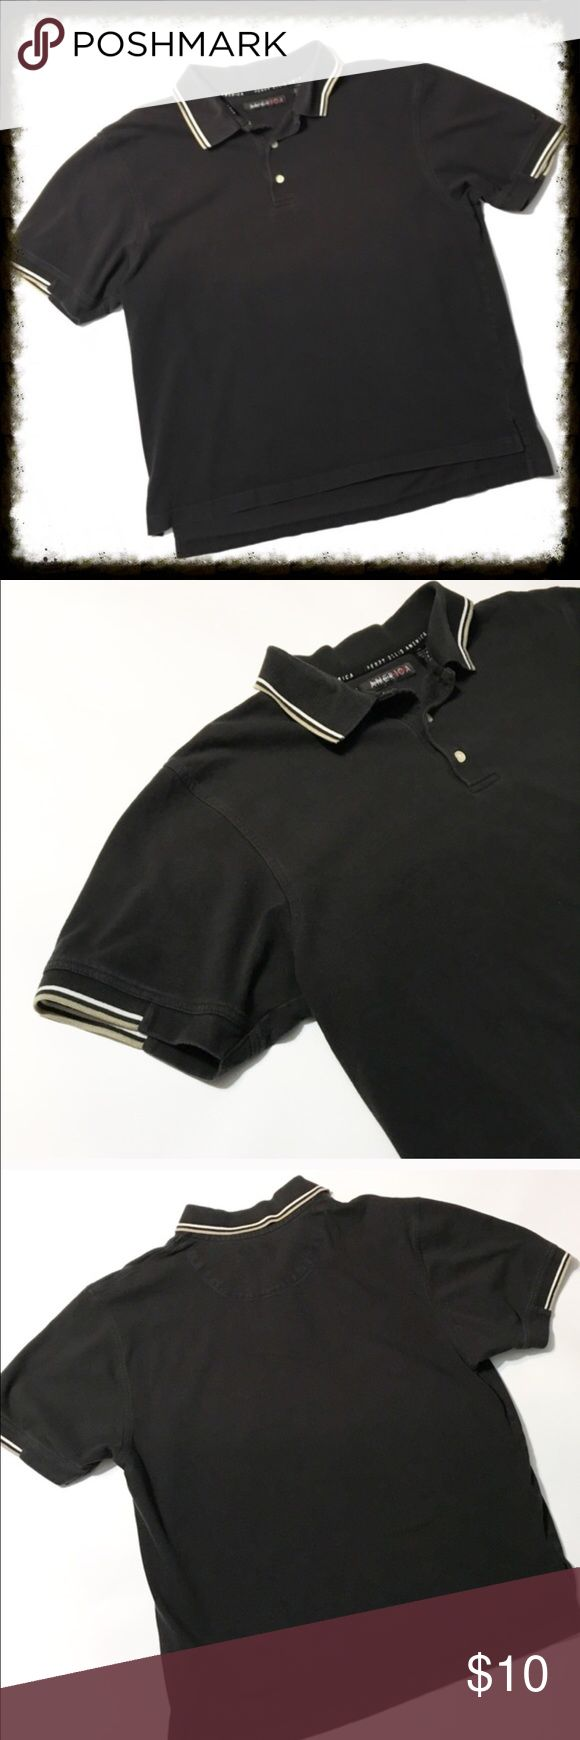 Perry Ellis Black Polo Shirt Size Large Perry Ellis Black Polo Shirt. In good condition with normal signs of wash and wear. No stains. Perry Ellis Shirts Polos